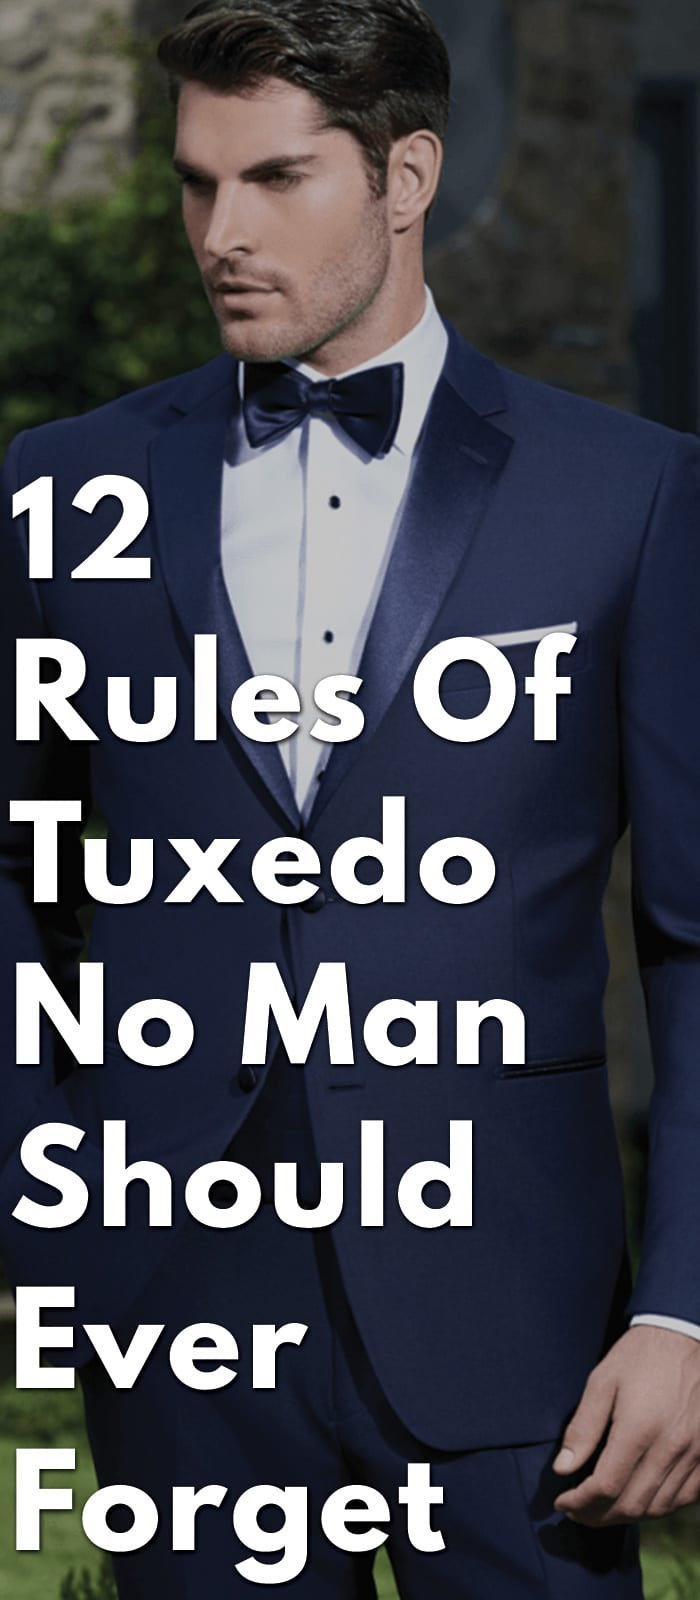 12-Rules-Of-Tuxedo-No-Man-Should-Ever-Forget